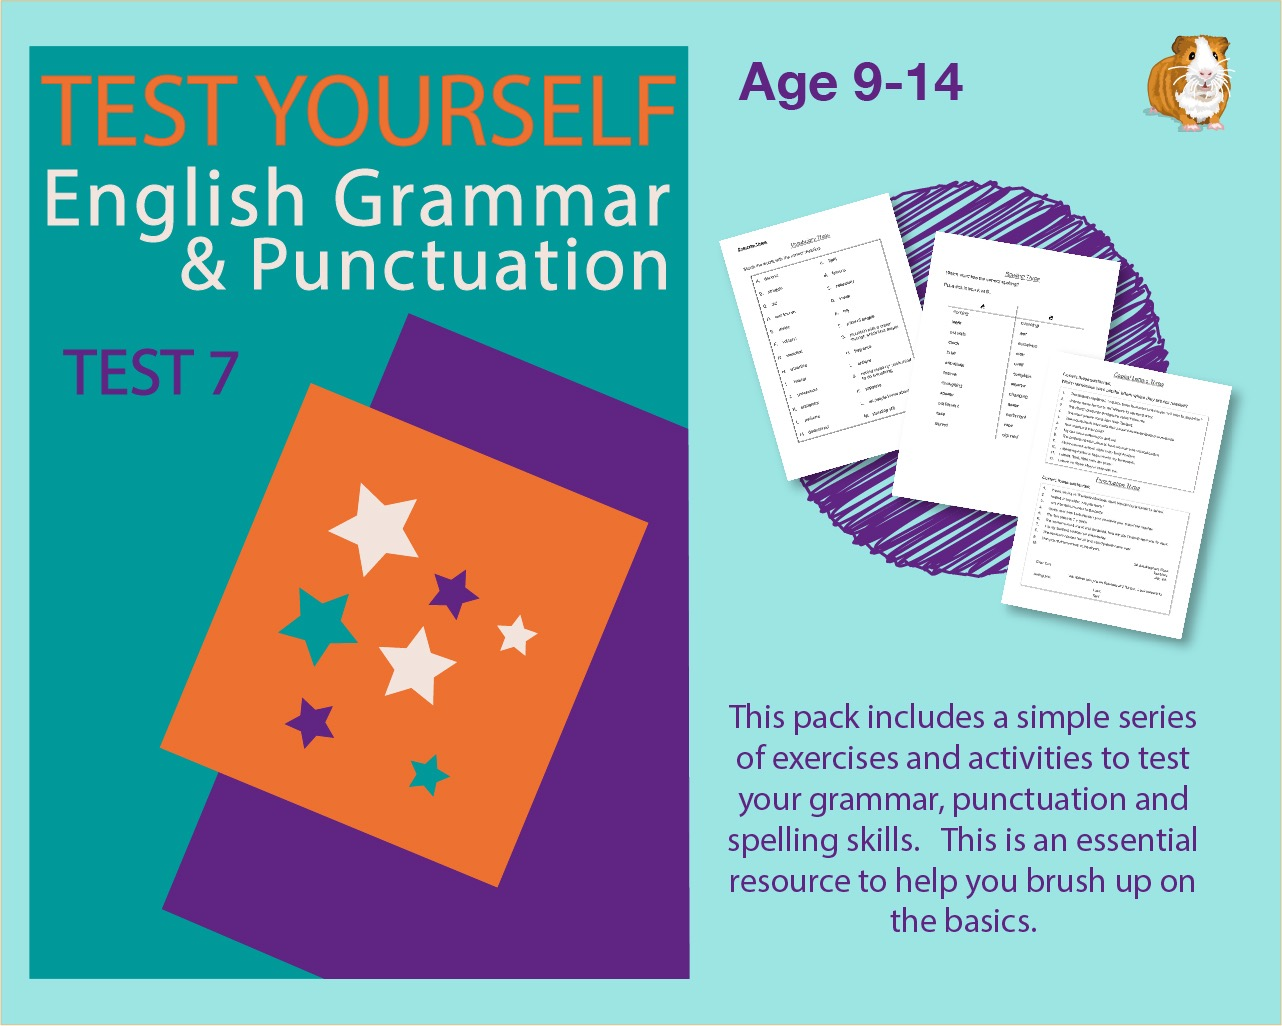 Assessment Test 7  (Test Your English Grammar And Punctuation Skills) 9-14 years